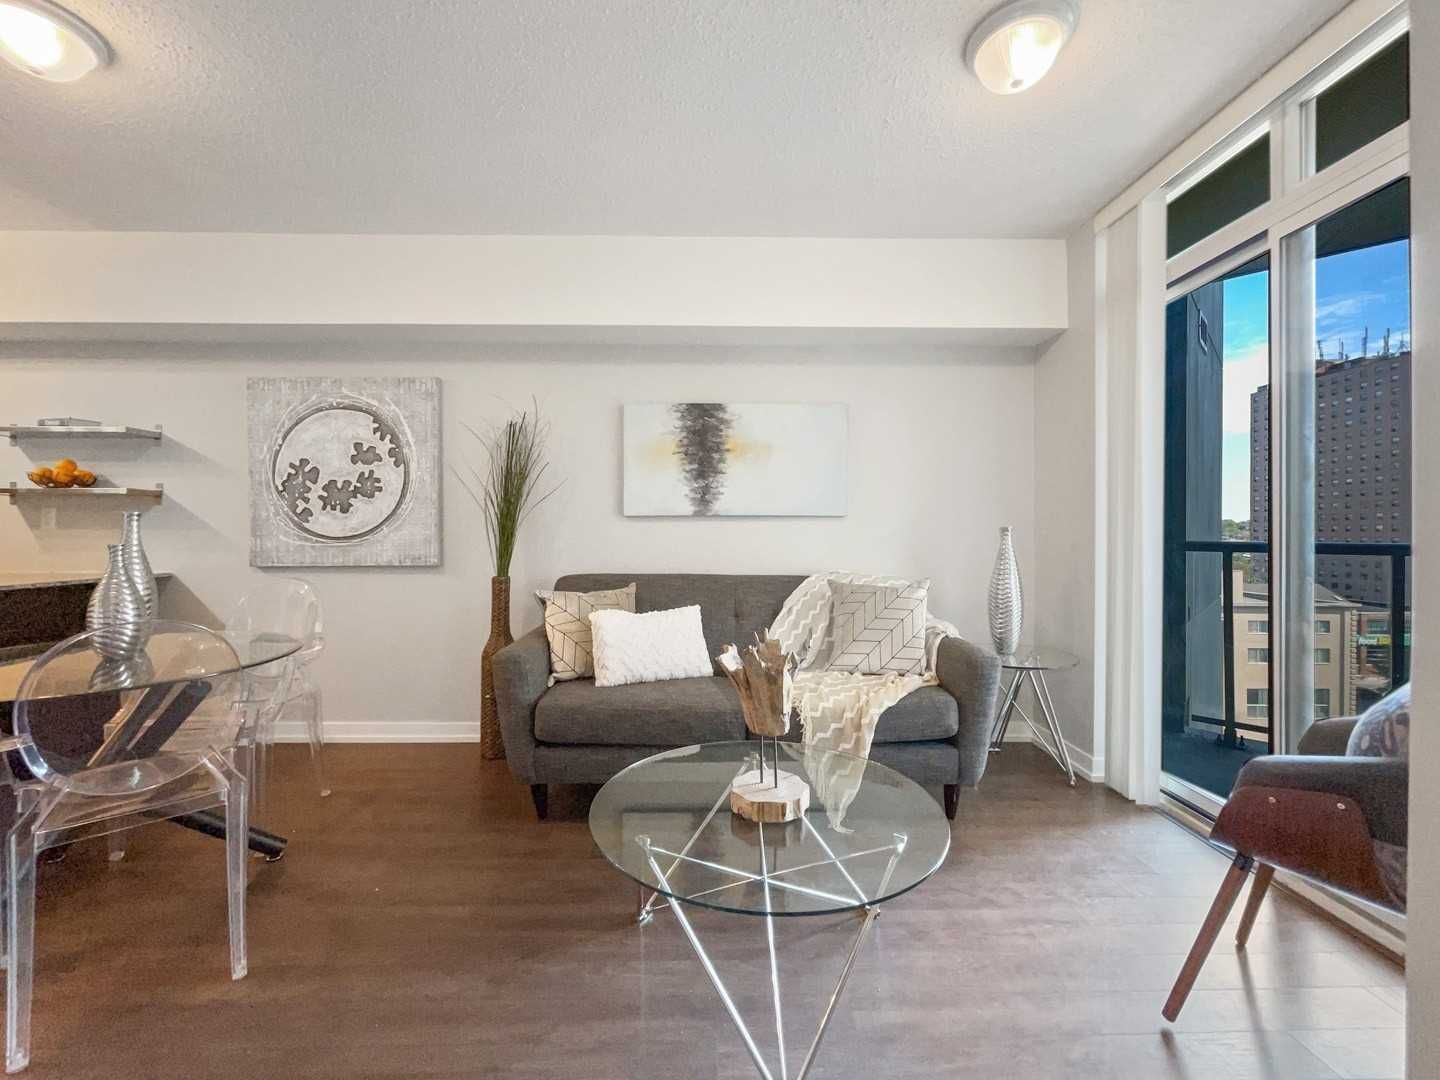 816 Lansdowne Ave, unit 826 for sale in Toronto - image #2